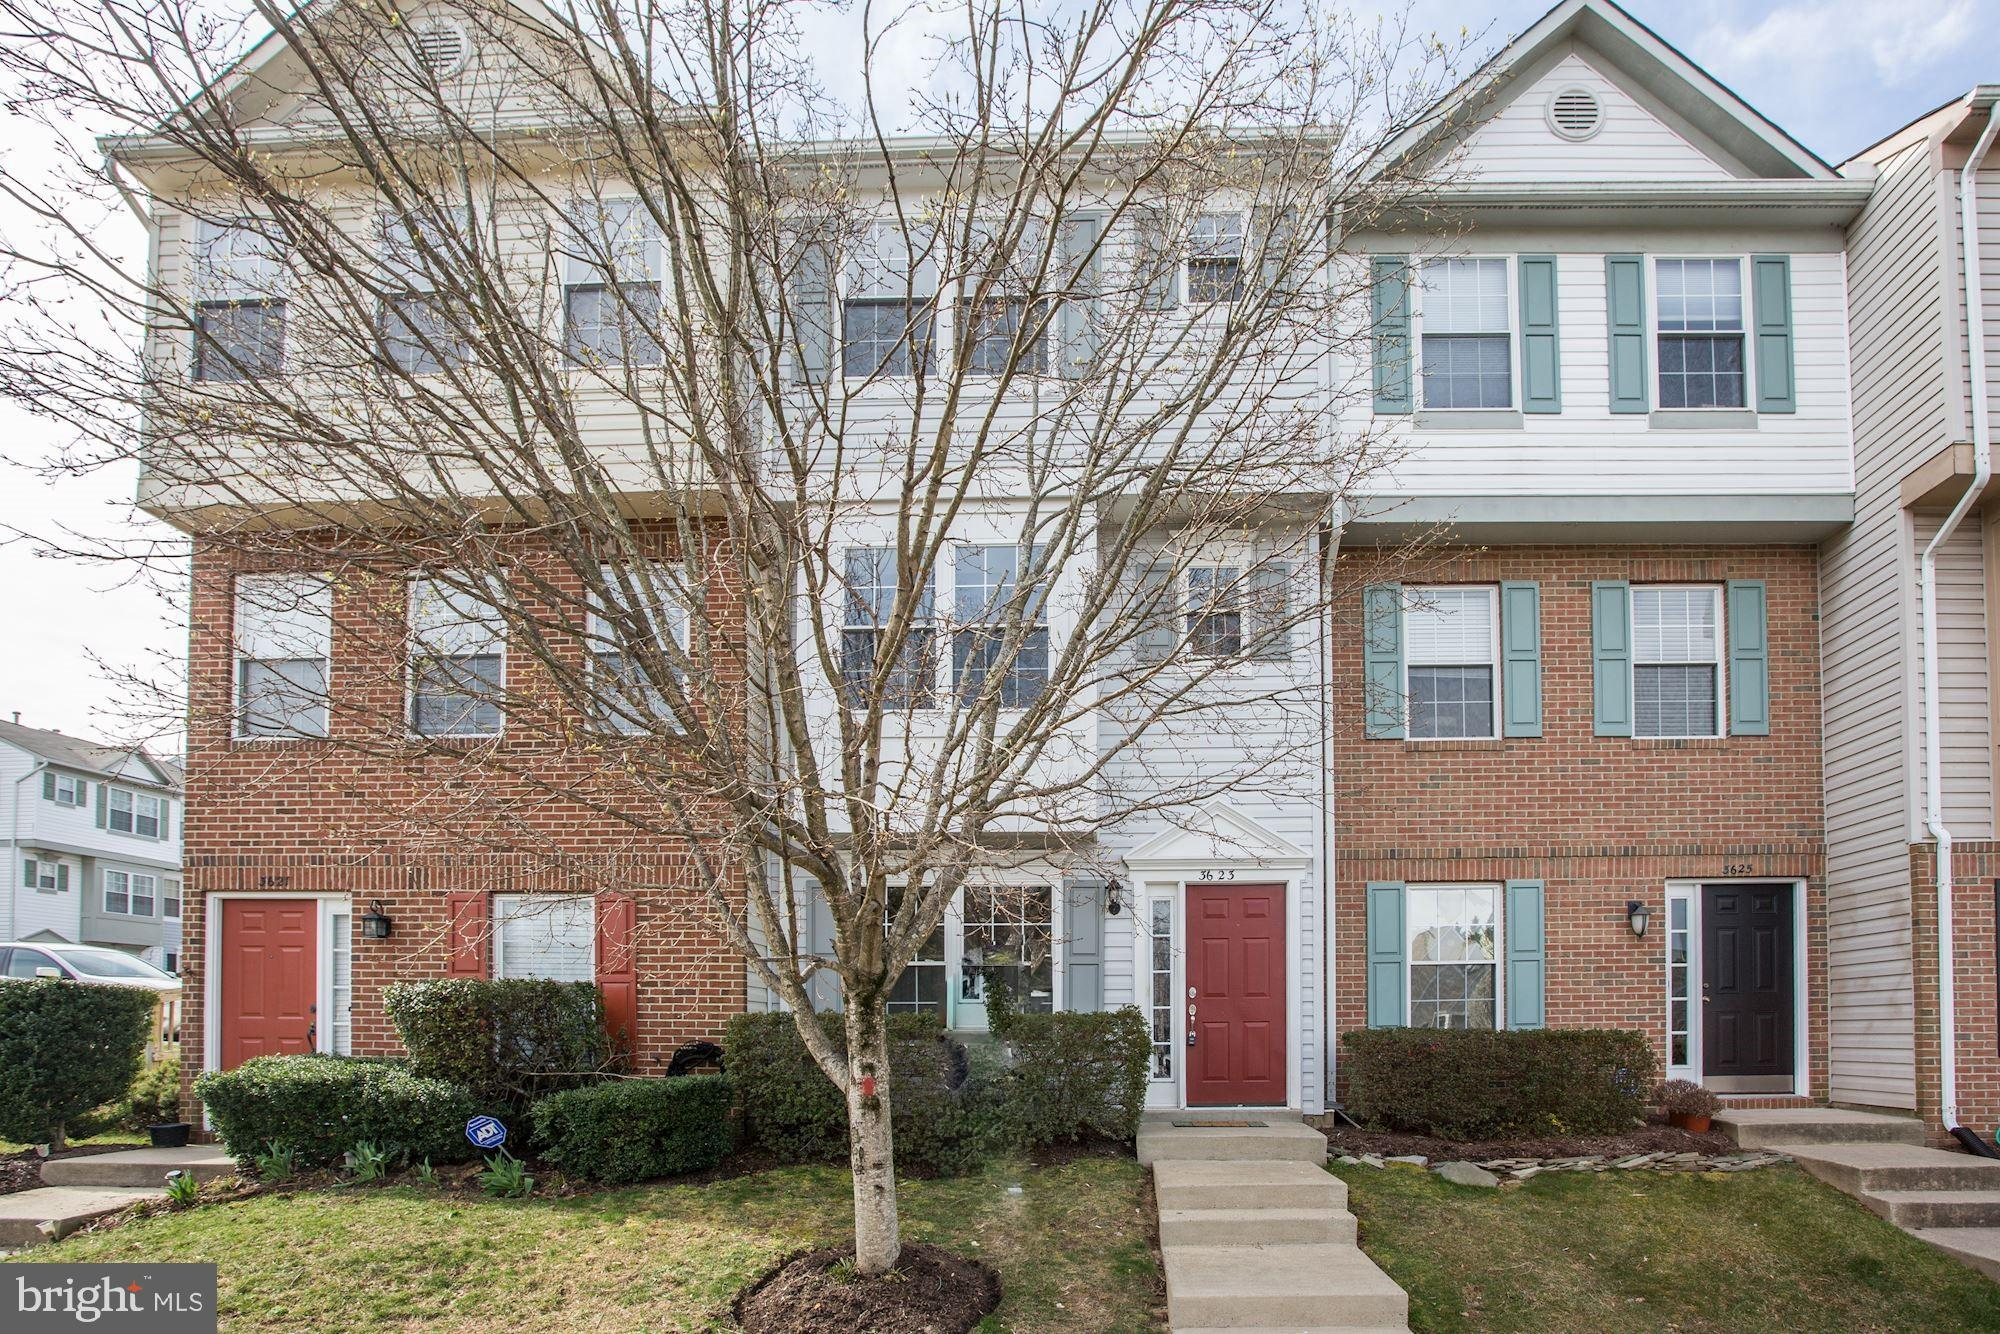 Fantastic townhome condo in a great neighborhood and location. Walk to Lake Ridge Park and shopping. Lots of commuter options. Close to schools. Plenty of space, 2 large bedrooms upstairs and one on lower level. Large kitchen and family area. Assigned parking. Community has a beautiful pool.